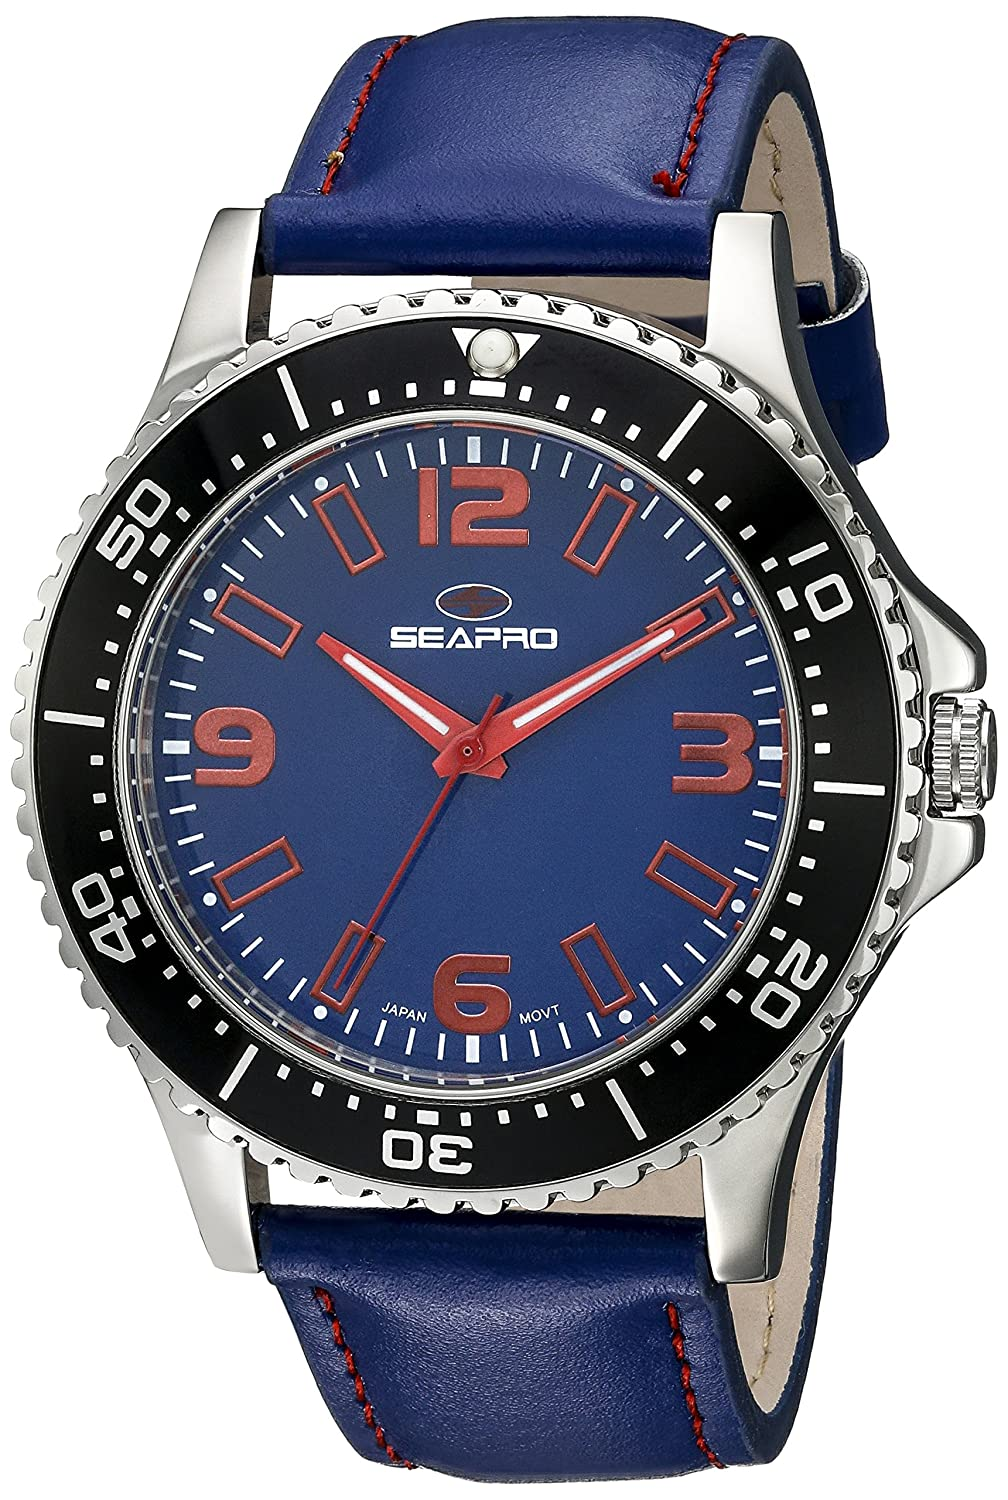 SEAPRO HERREN-ARMBANDUHR 44MM ARMBAND SYNTHETIKLEDER BLAU QUARZ ANALOG SP5313